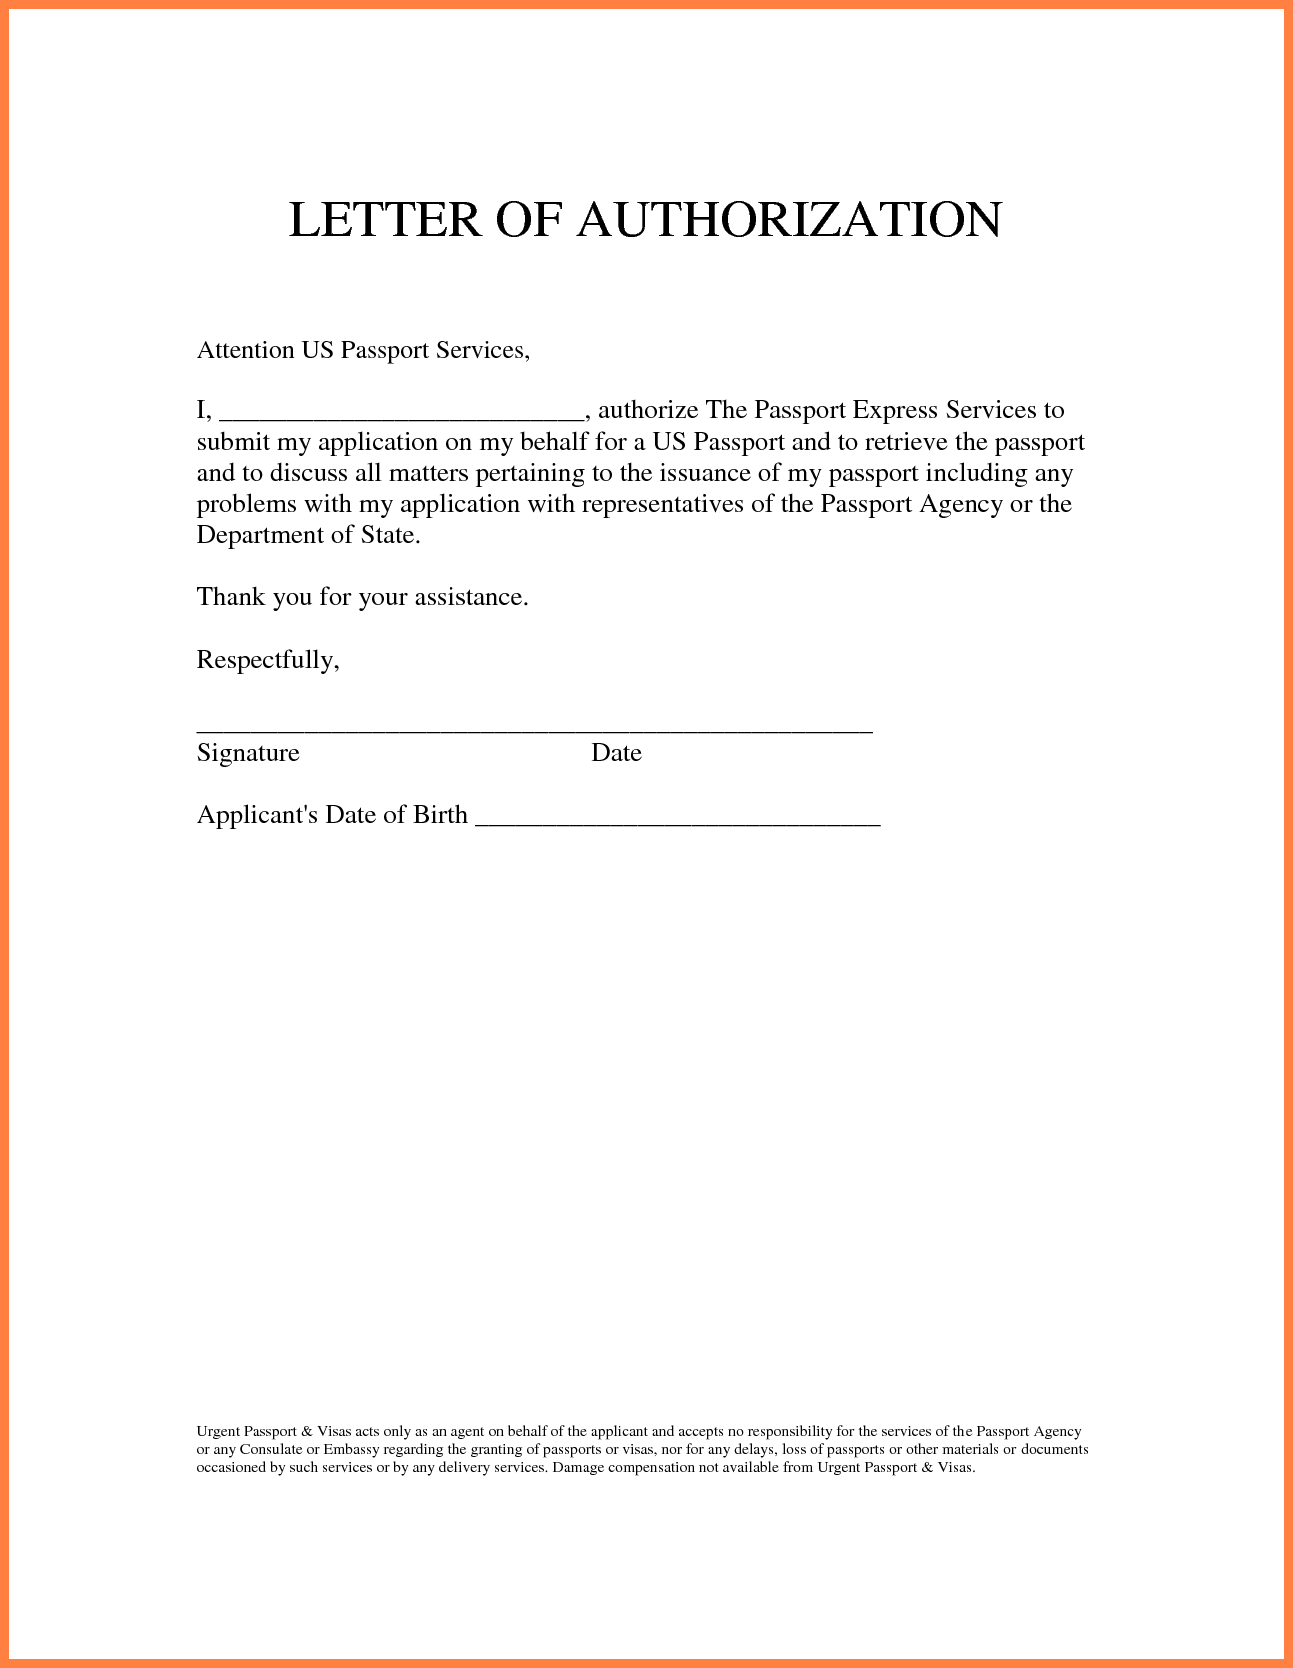 Sample authorization letter granting permissionthorization for Notarized letter of authorization template